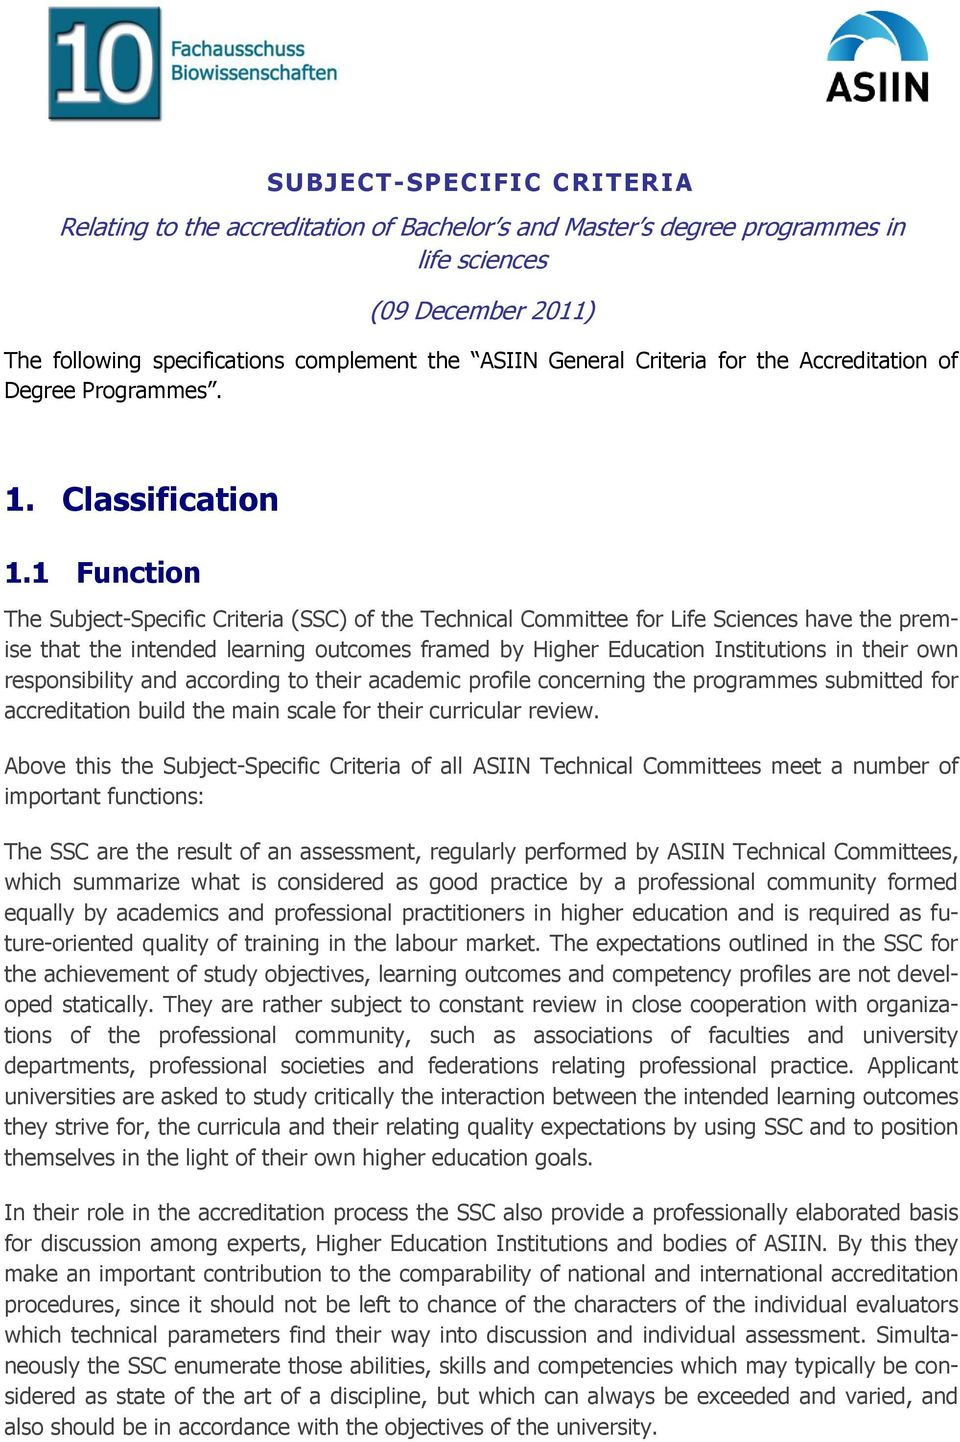 1 Function The Subject-Specific Criteria (SSC) of the Technical Committee for Life Sciences have the premise that the intended learning outcomes framed by Higher Education Institutions in their own